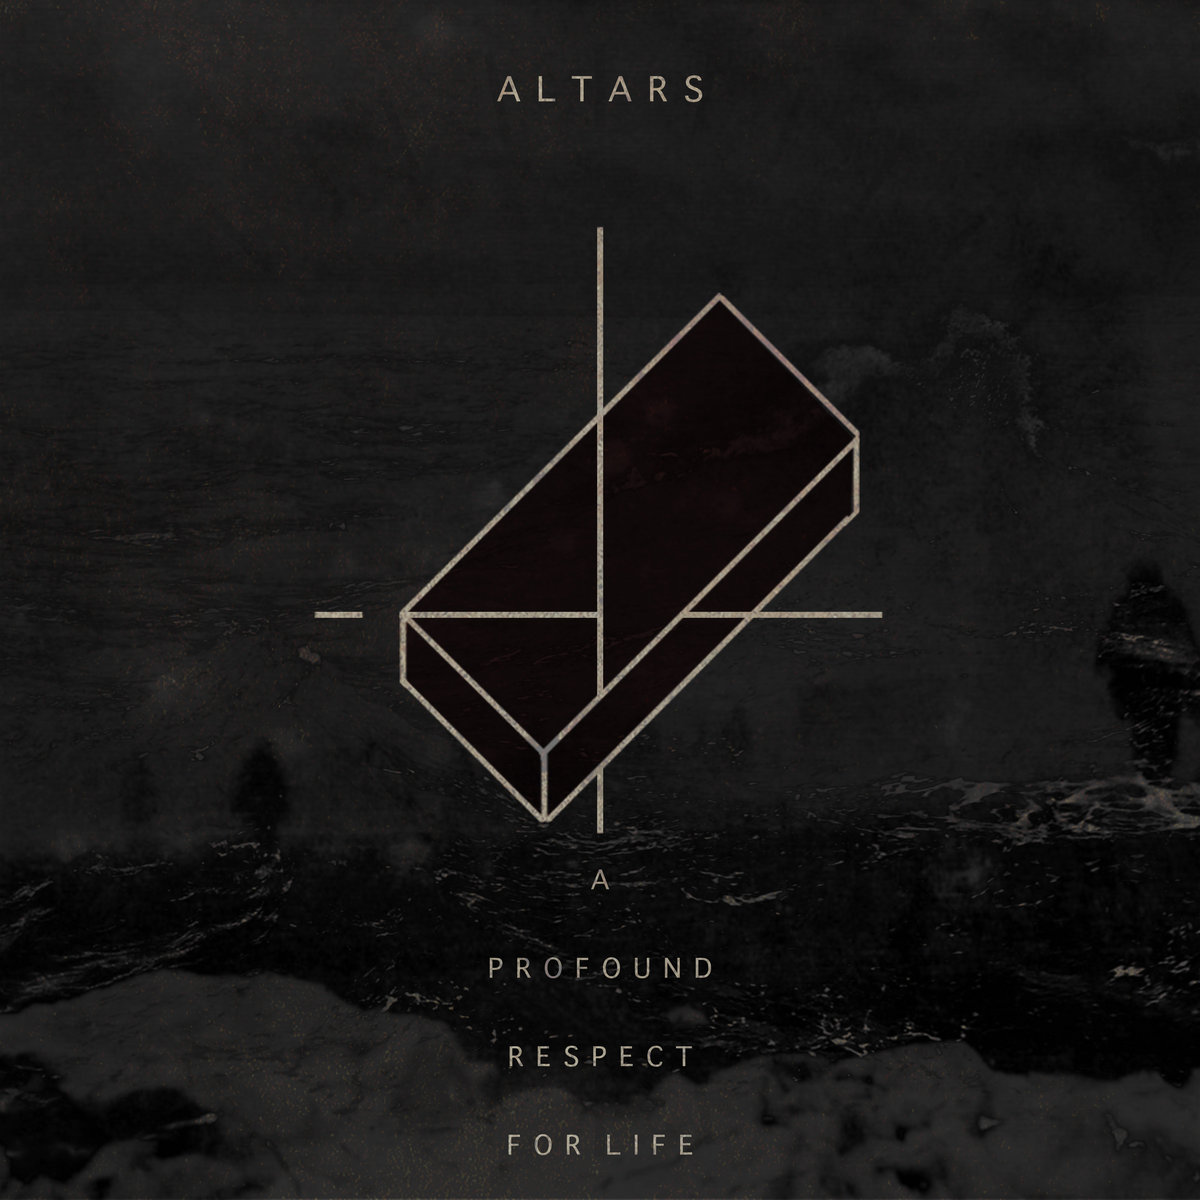 Altars - A Profound Respect for Life [EP] (2015)